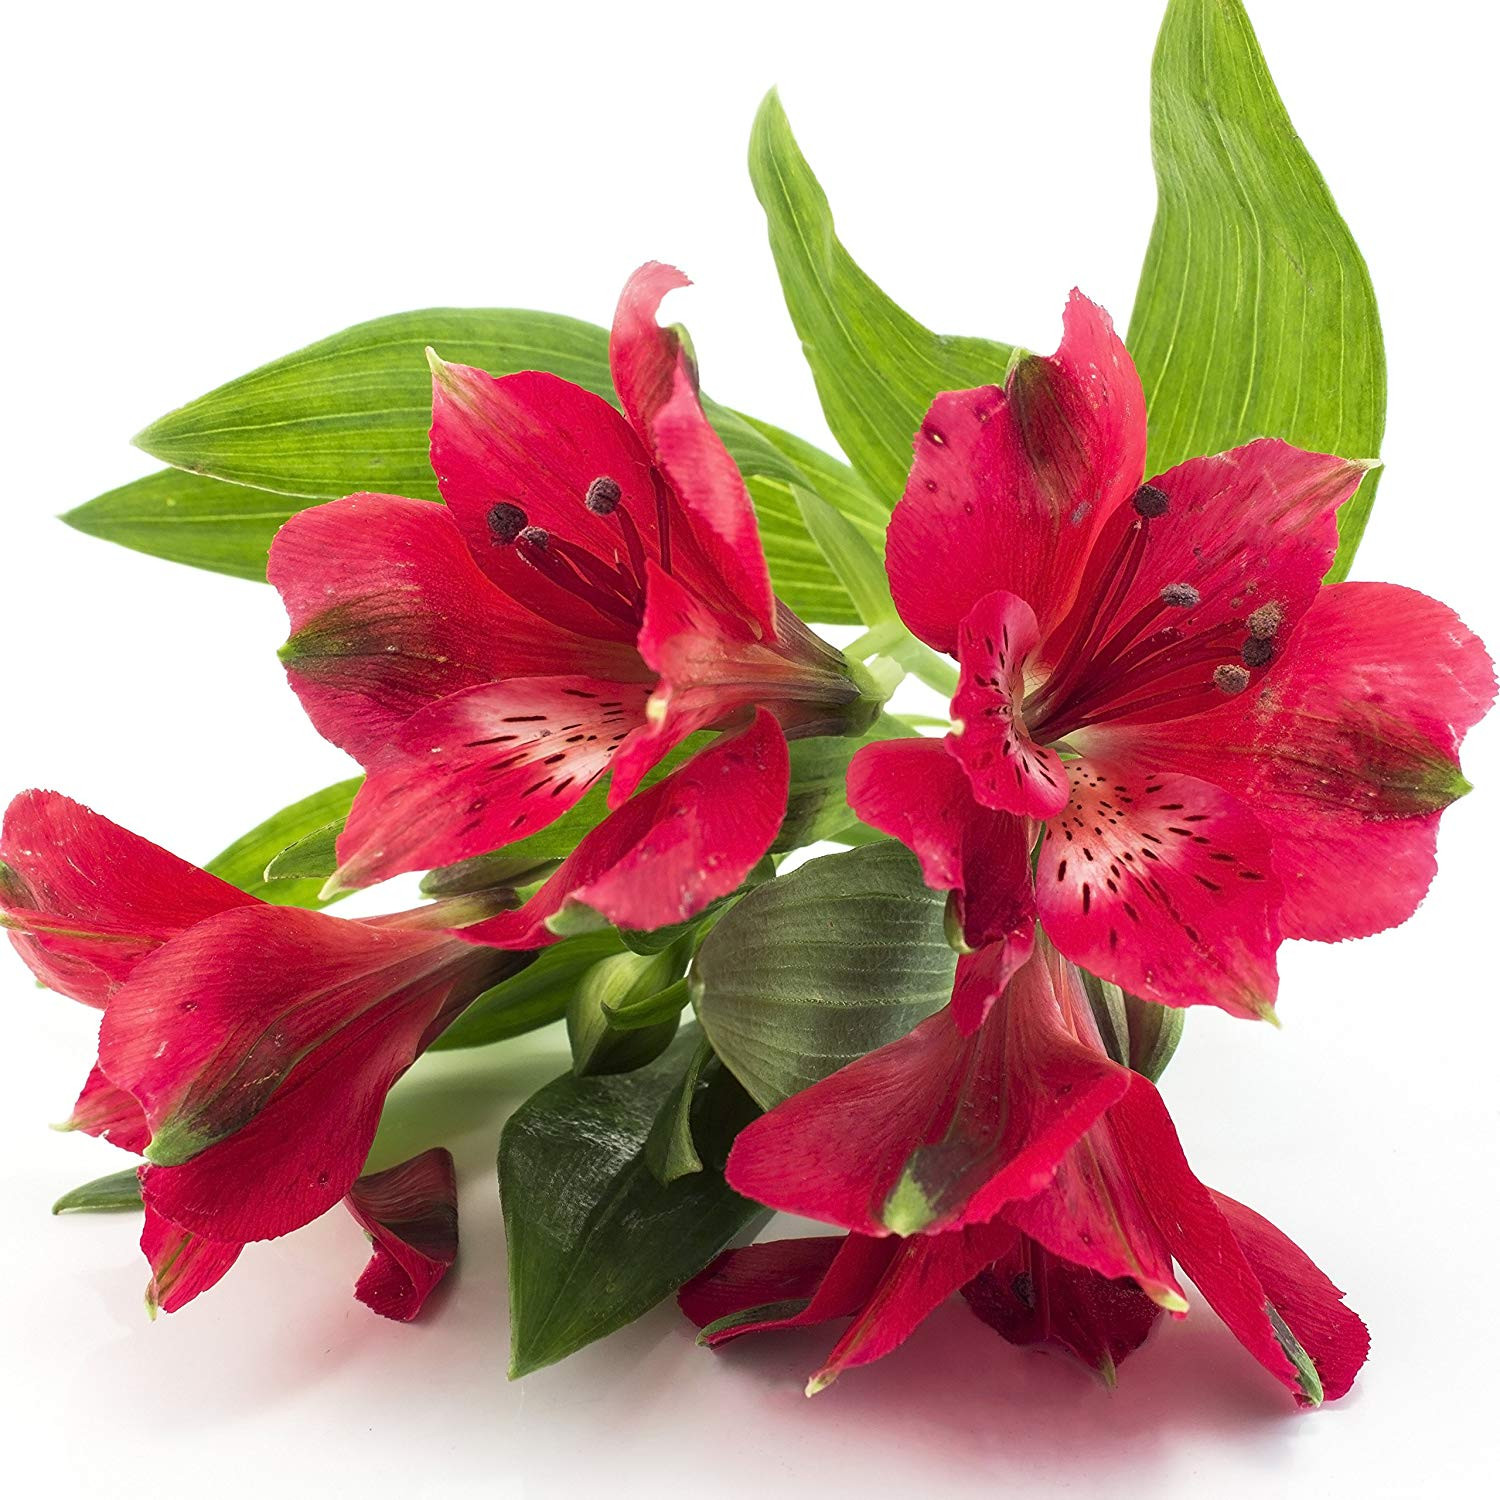 caterpillar bud vase of amazon com red alstroemeria kate peruvian lily princess lily in amazon com red alstroemeria kate peruvian lily princess lily 1 lush blooming size plant in 4 container ships from easy to grow tm garden